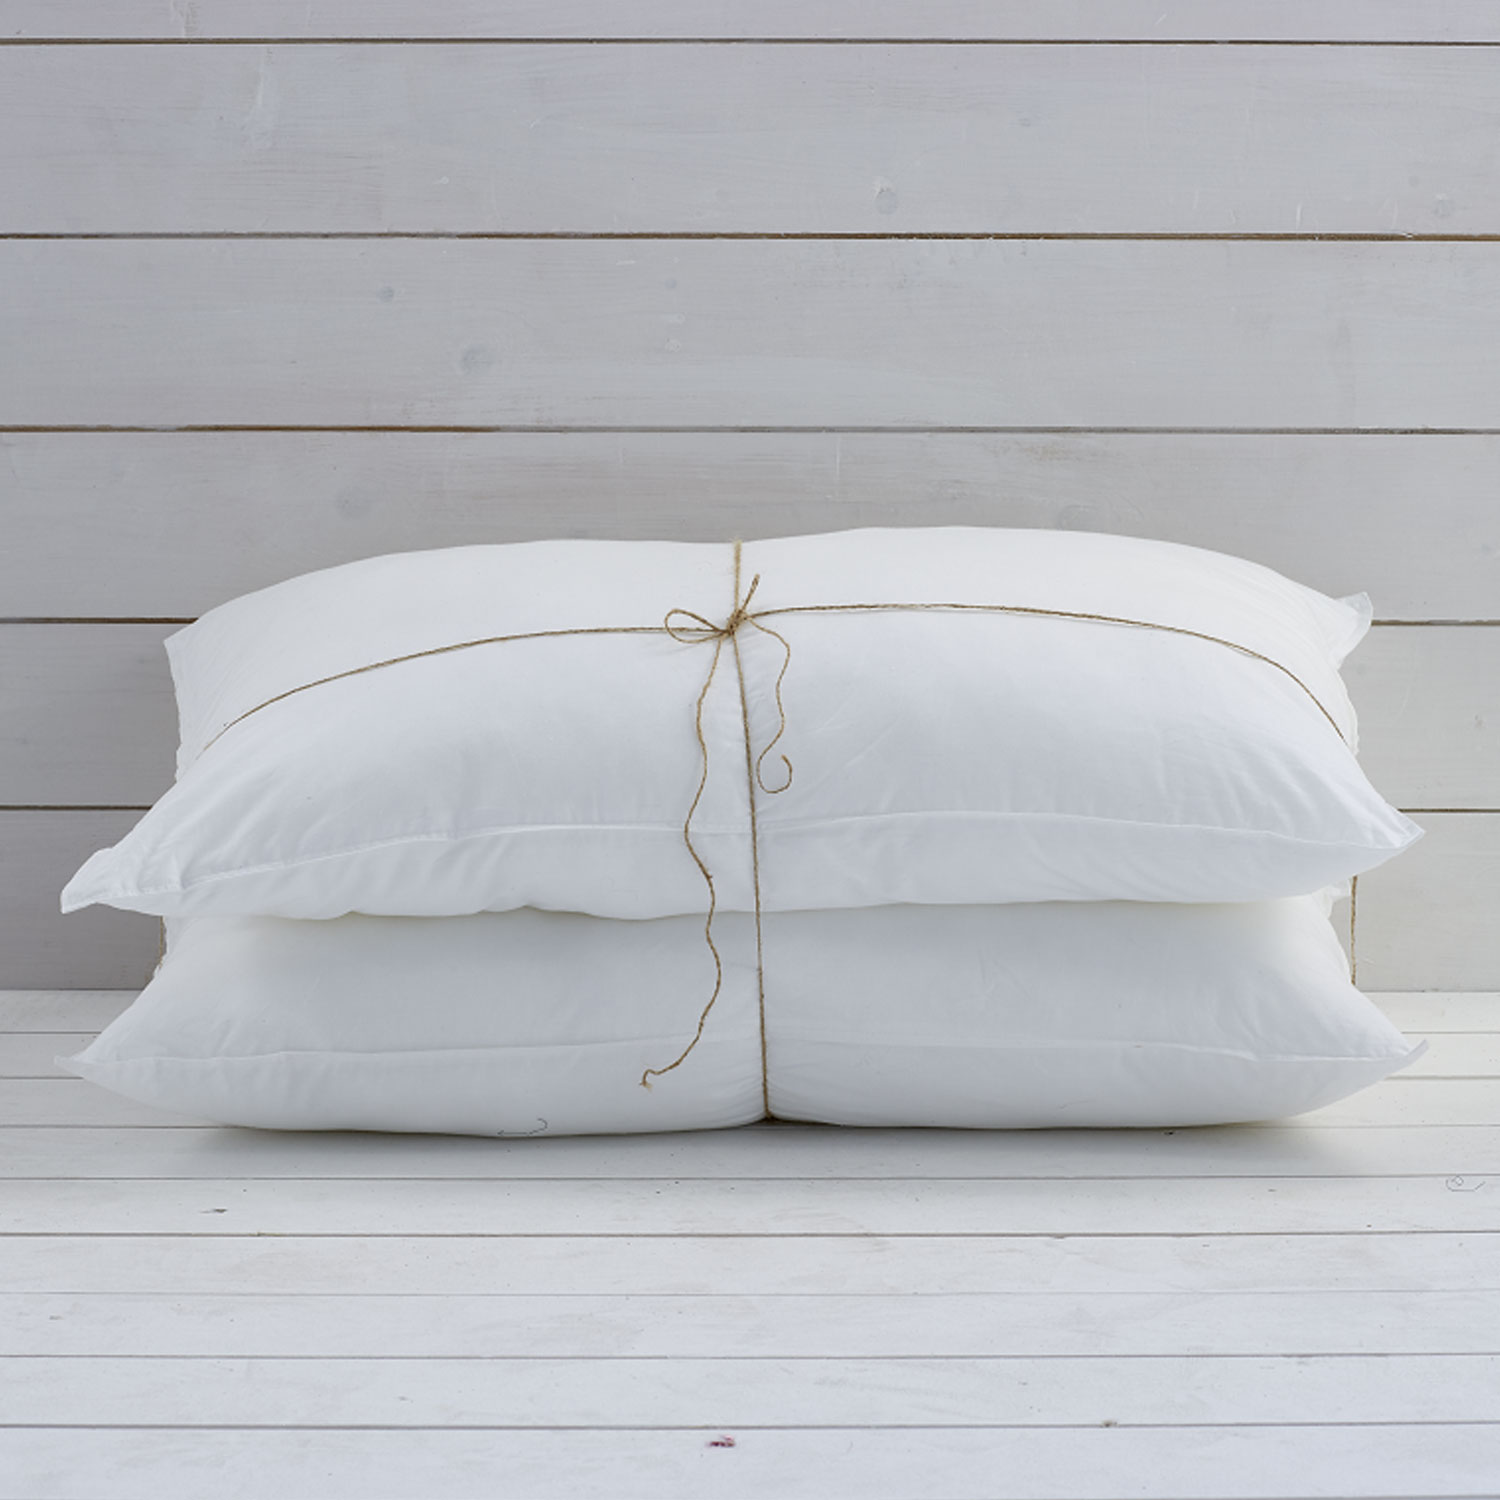 Stockists of Anti Allergy Pillows - Medium Support (Pair)